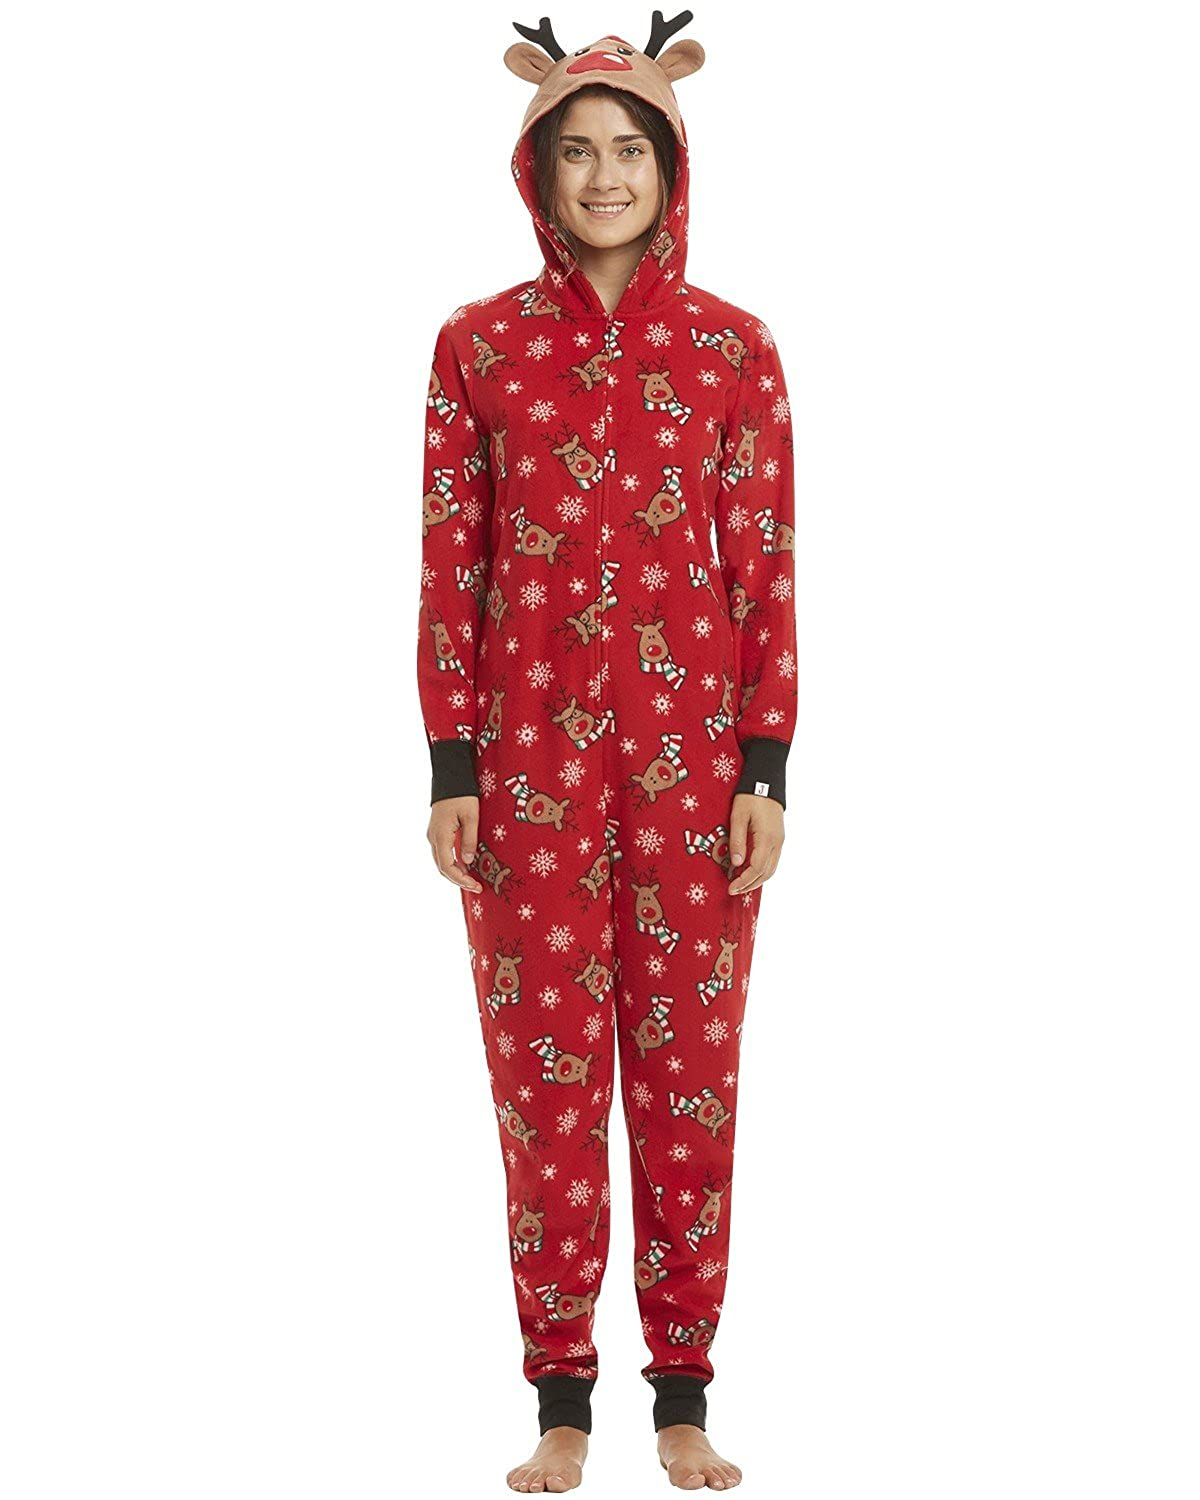 d21d2d7336 Amazon.com  GIKING Christmas Matching Family Pajamas Set Santa s Deer  Sleepwear Jumpsuit Hoodies  Clothing